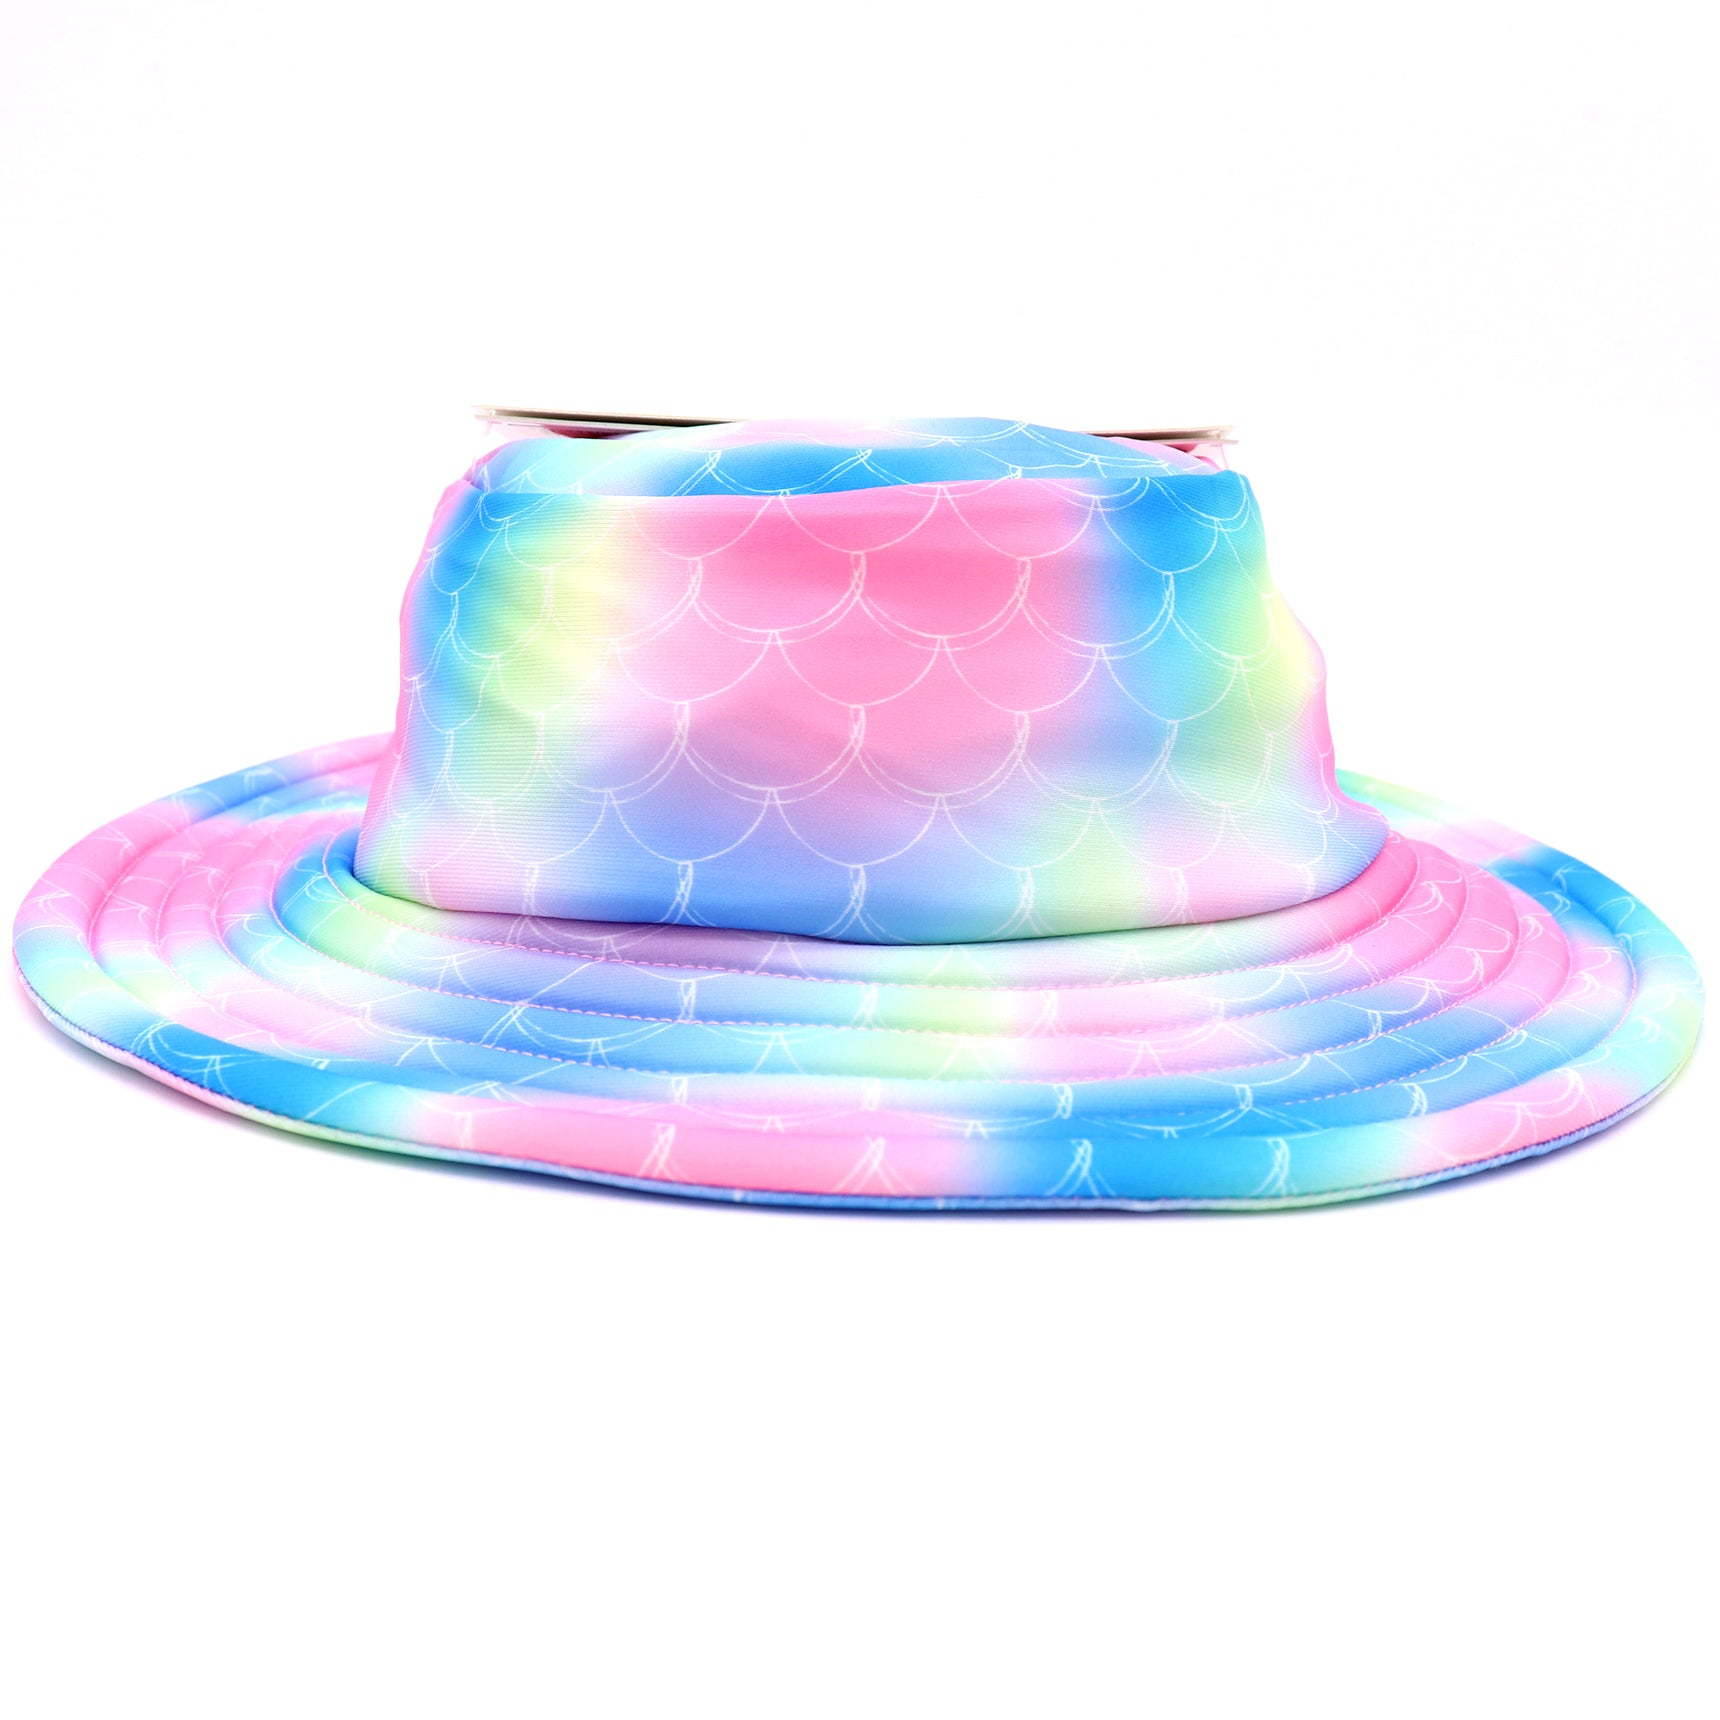 Colorful Mermaid scale pattern girls bucket hat with a wide brim perfect for beach days